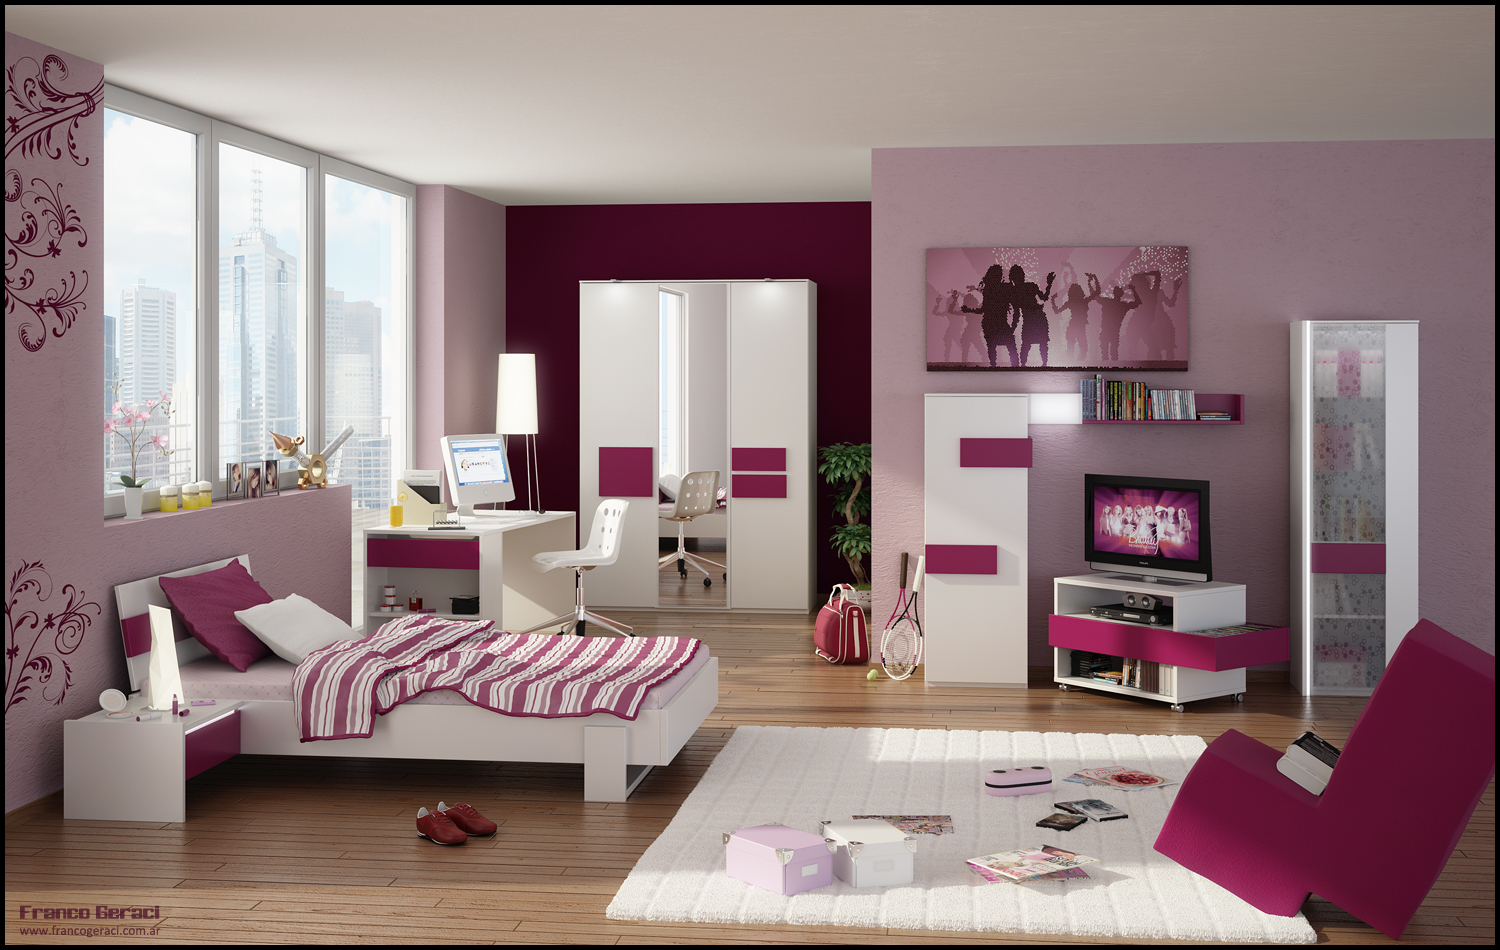 Teenage room designs - Pics of girl room ideas ...